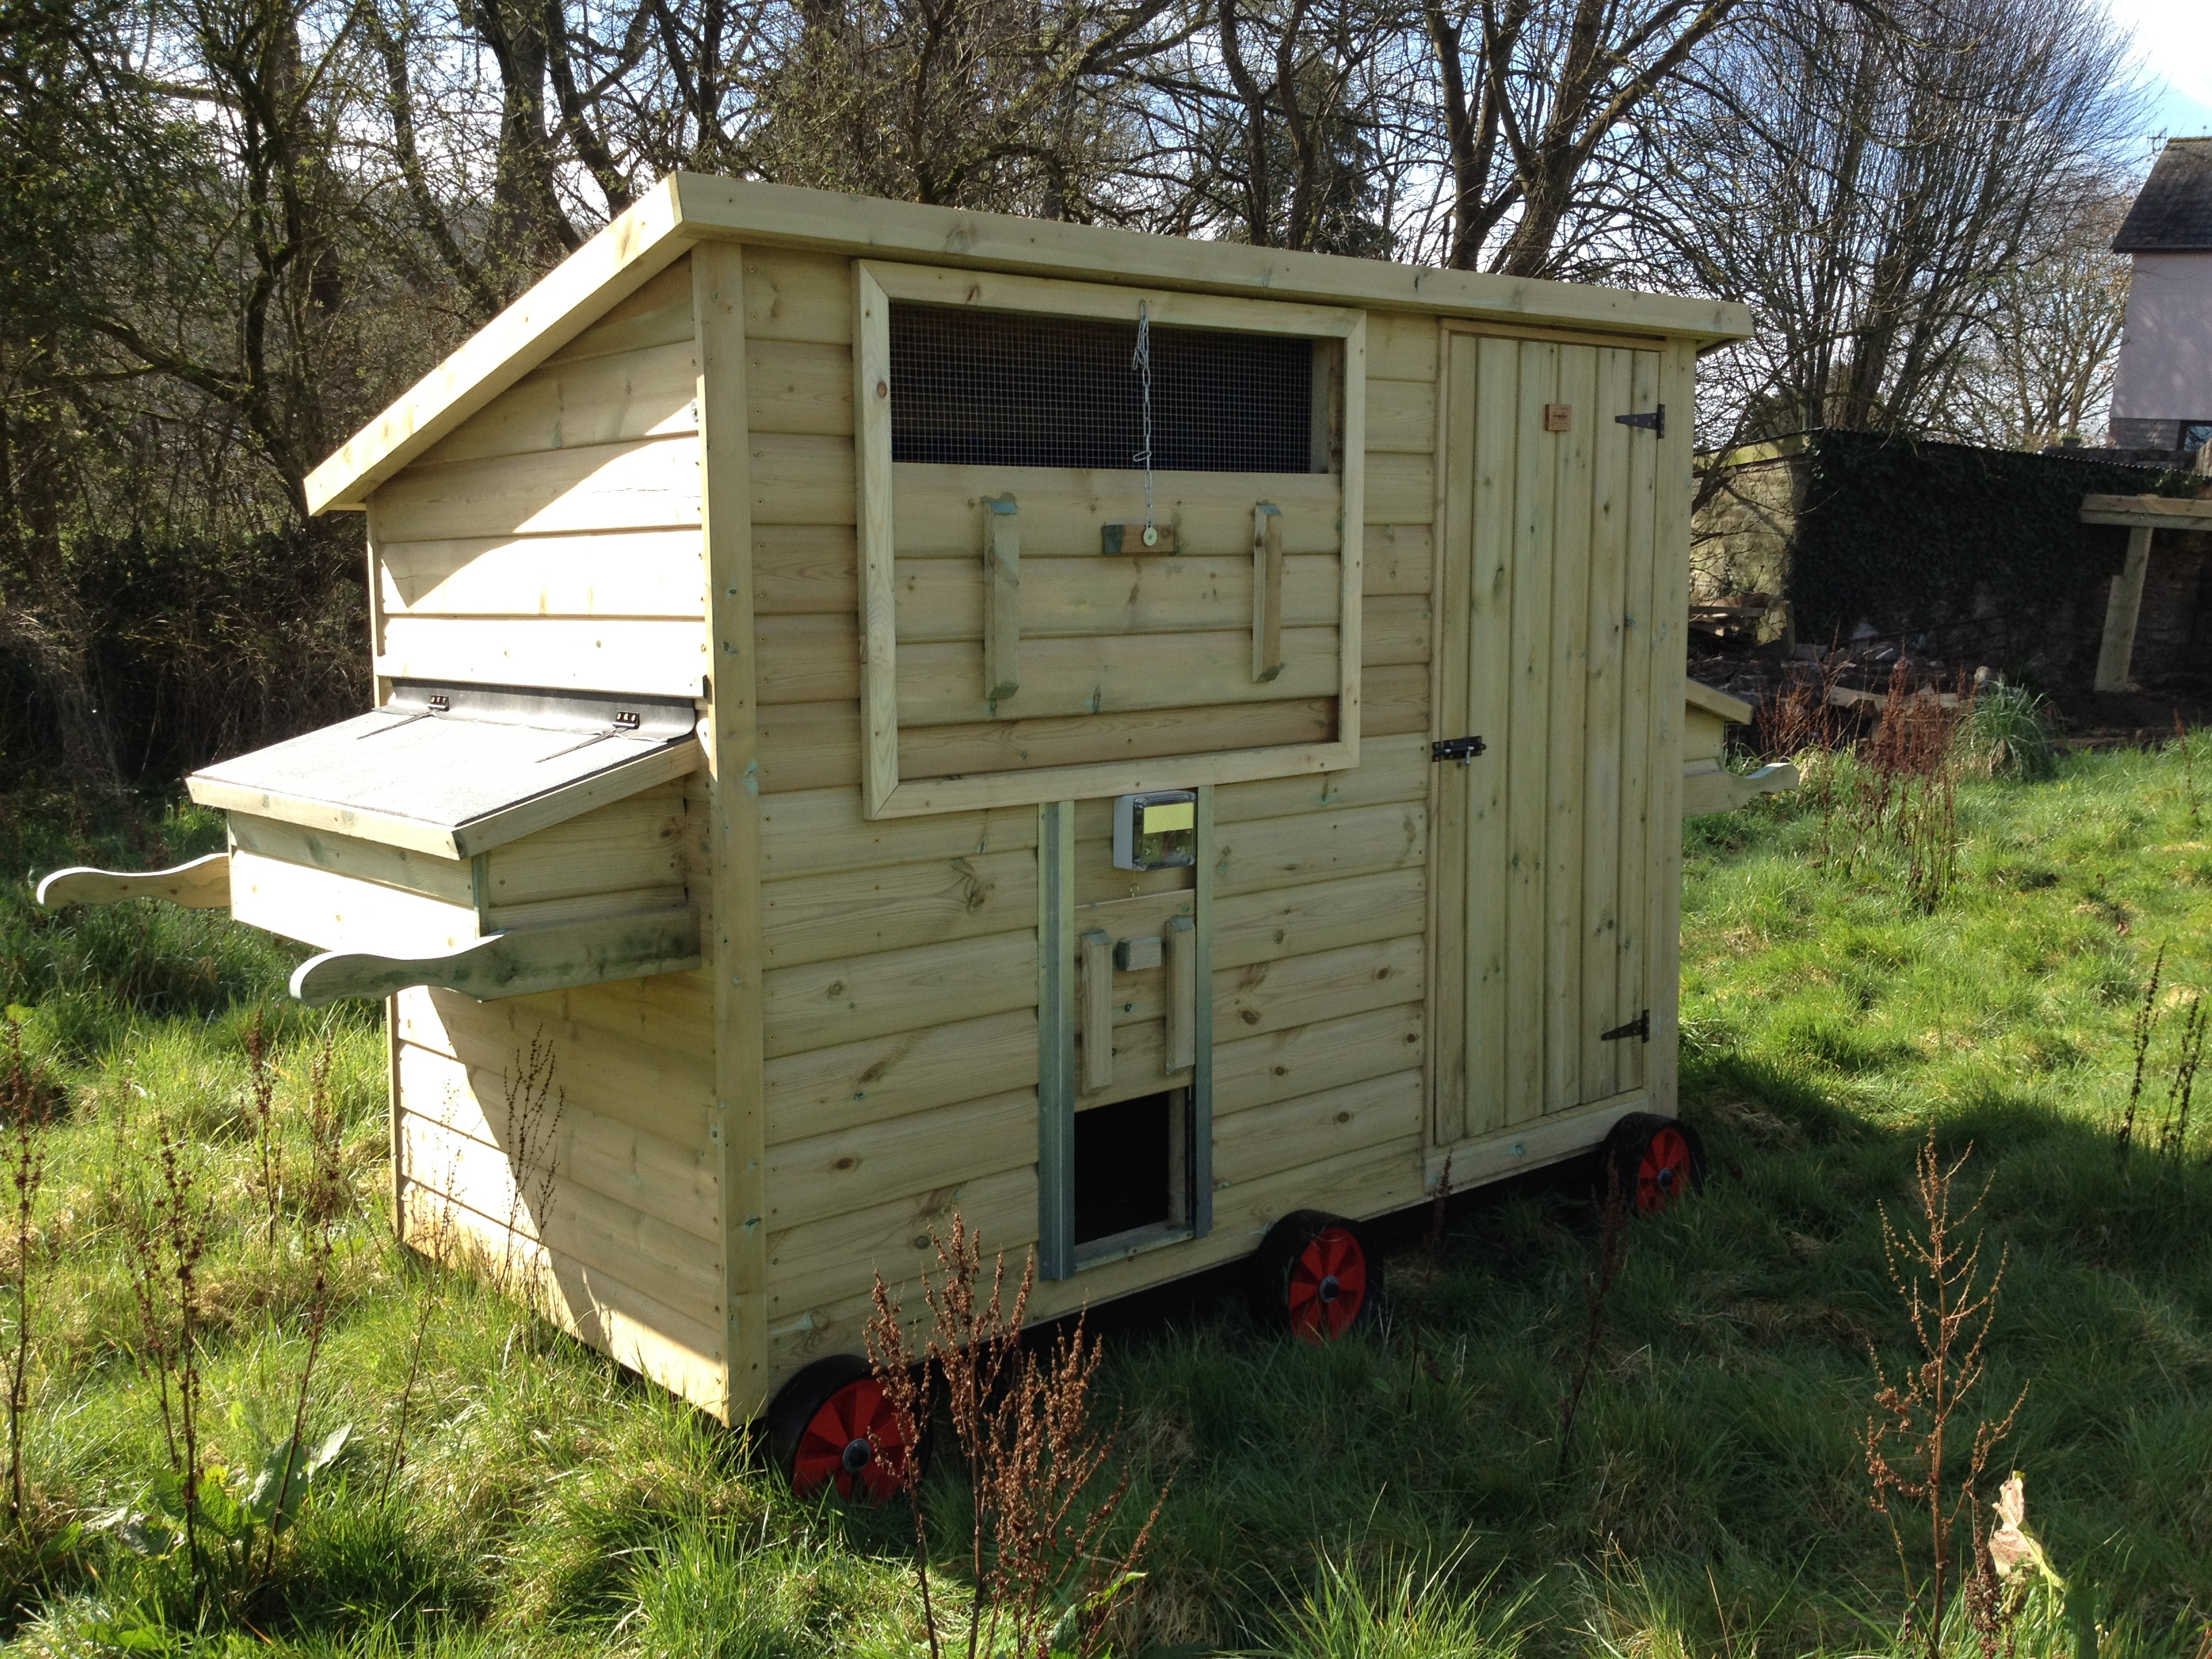 Solar Chicken House With Wheels The Wooden Workshop